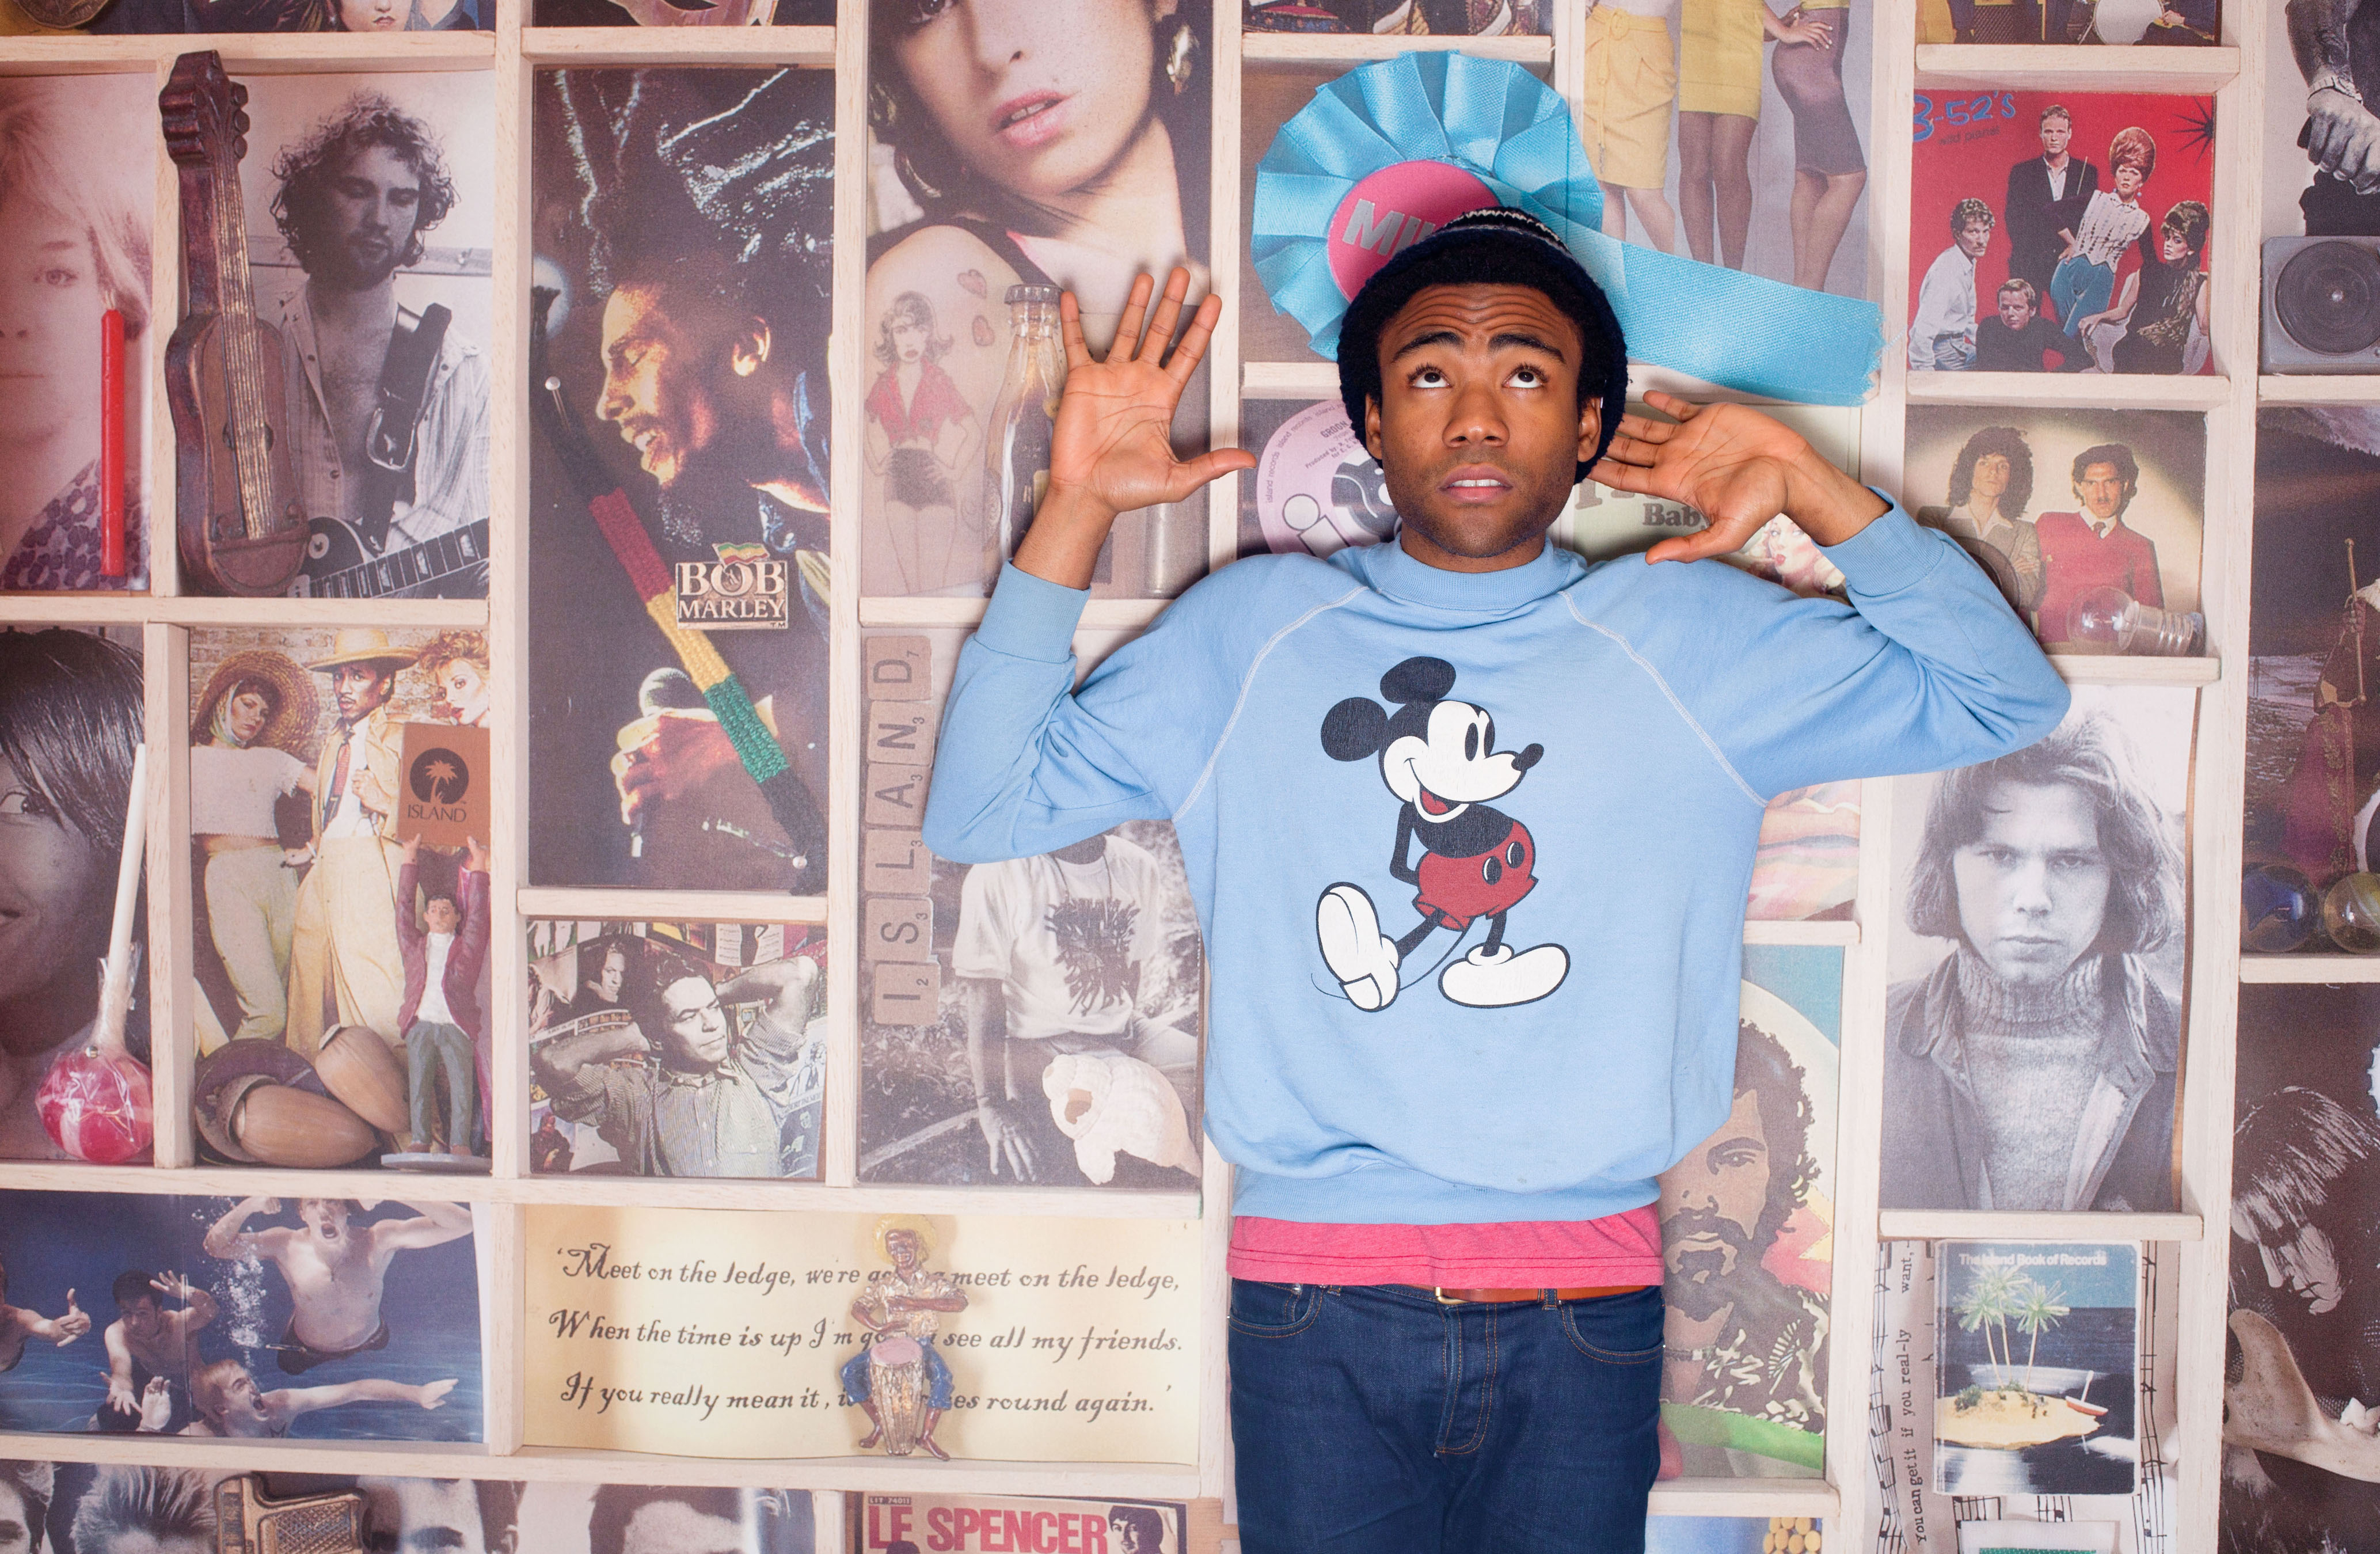 Musical Evolution of Childish Gambino